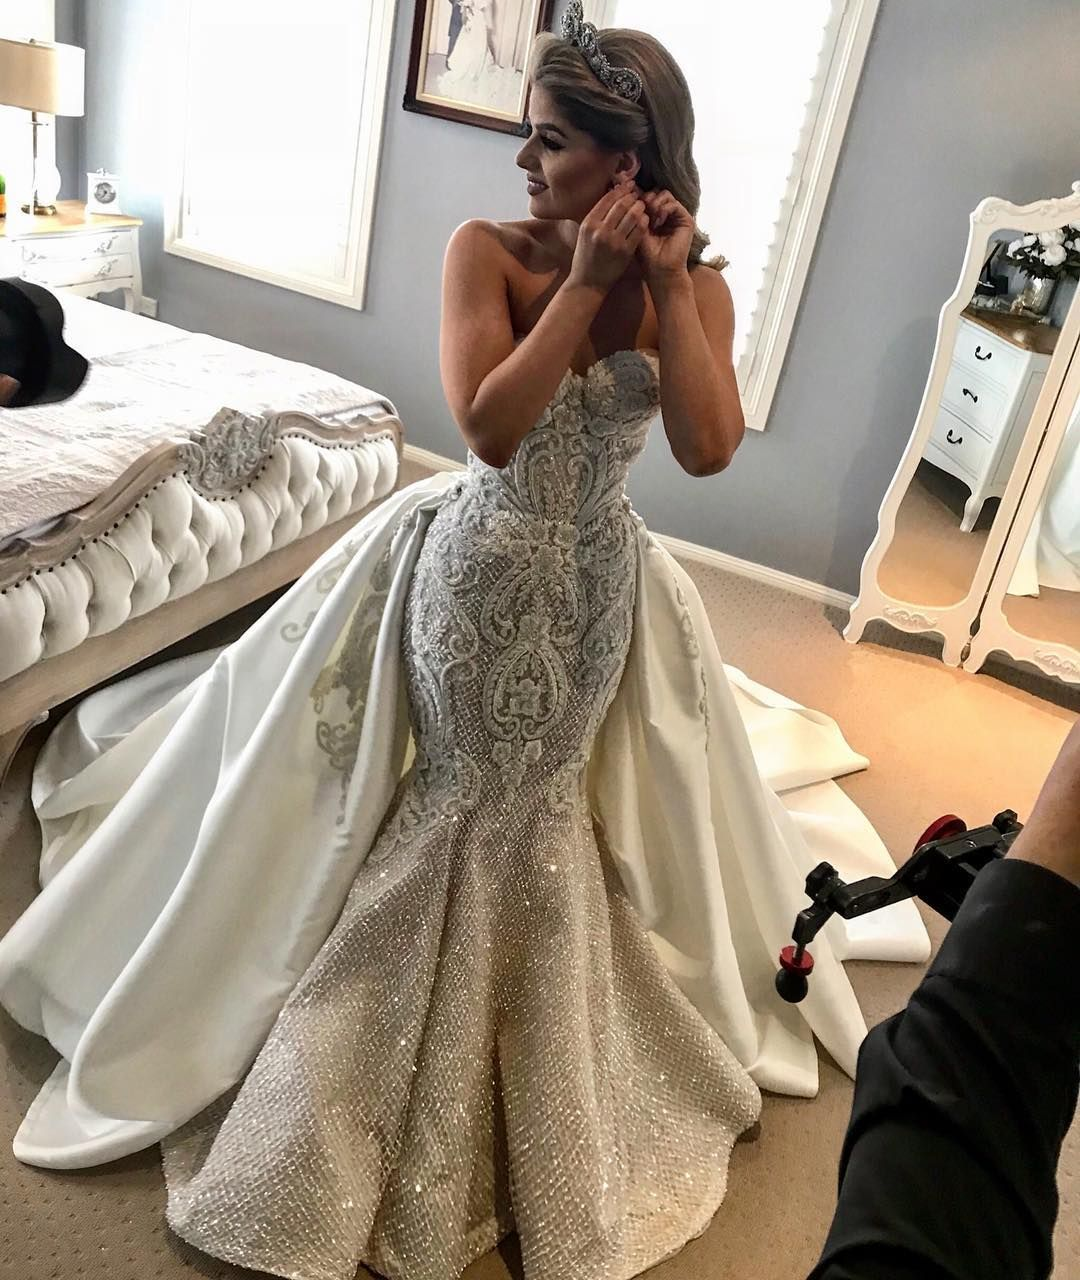 Samira wiley wedding dress   Likes  Comments  Suzanna Blazevic suzannablazevic on